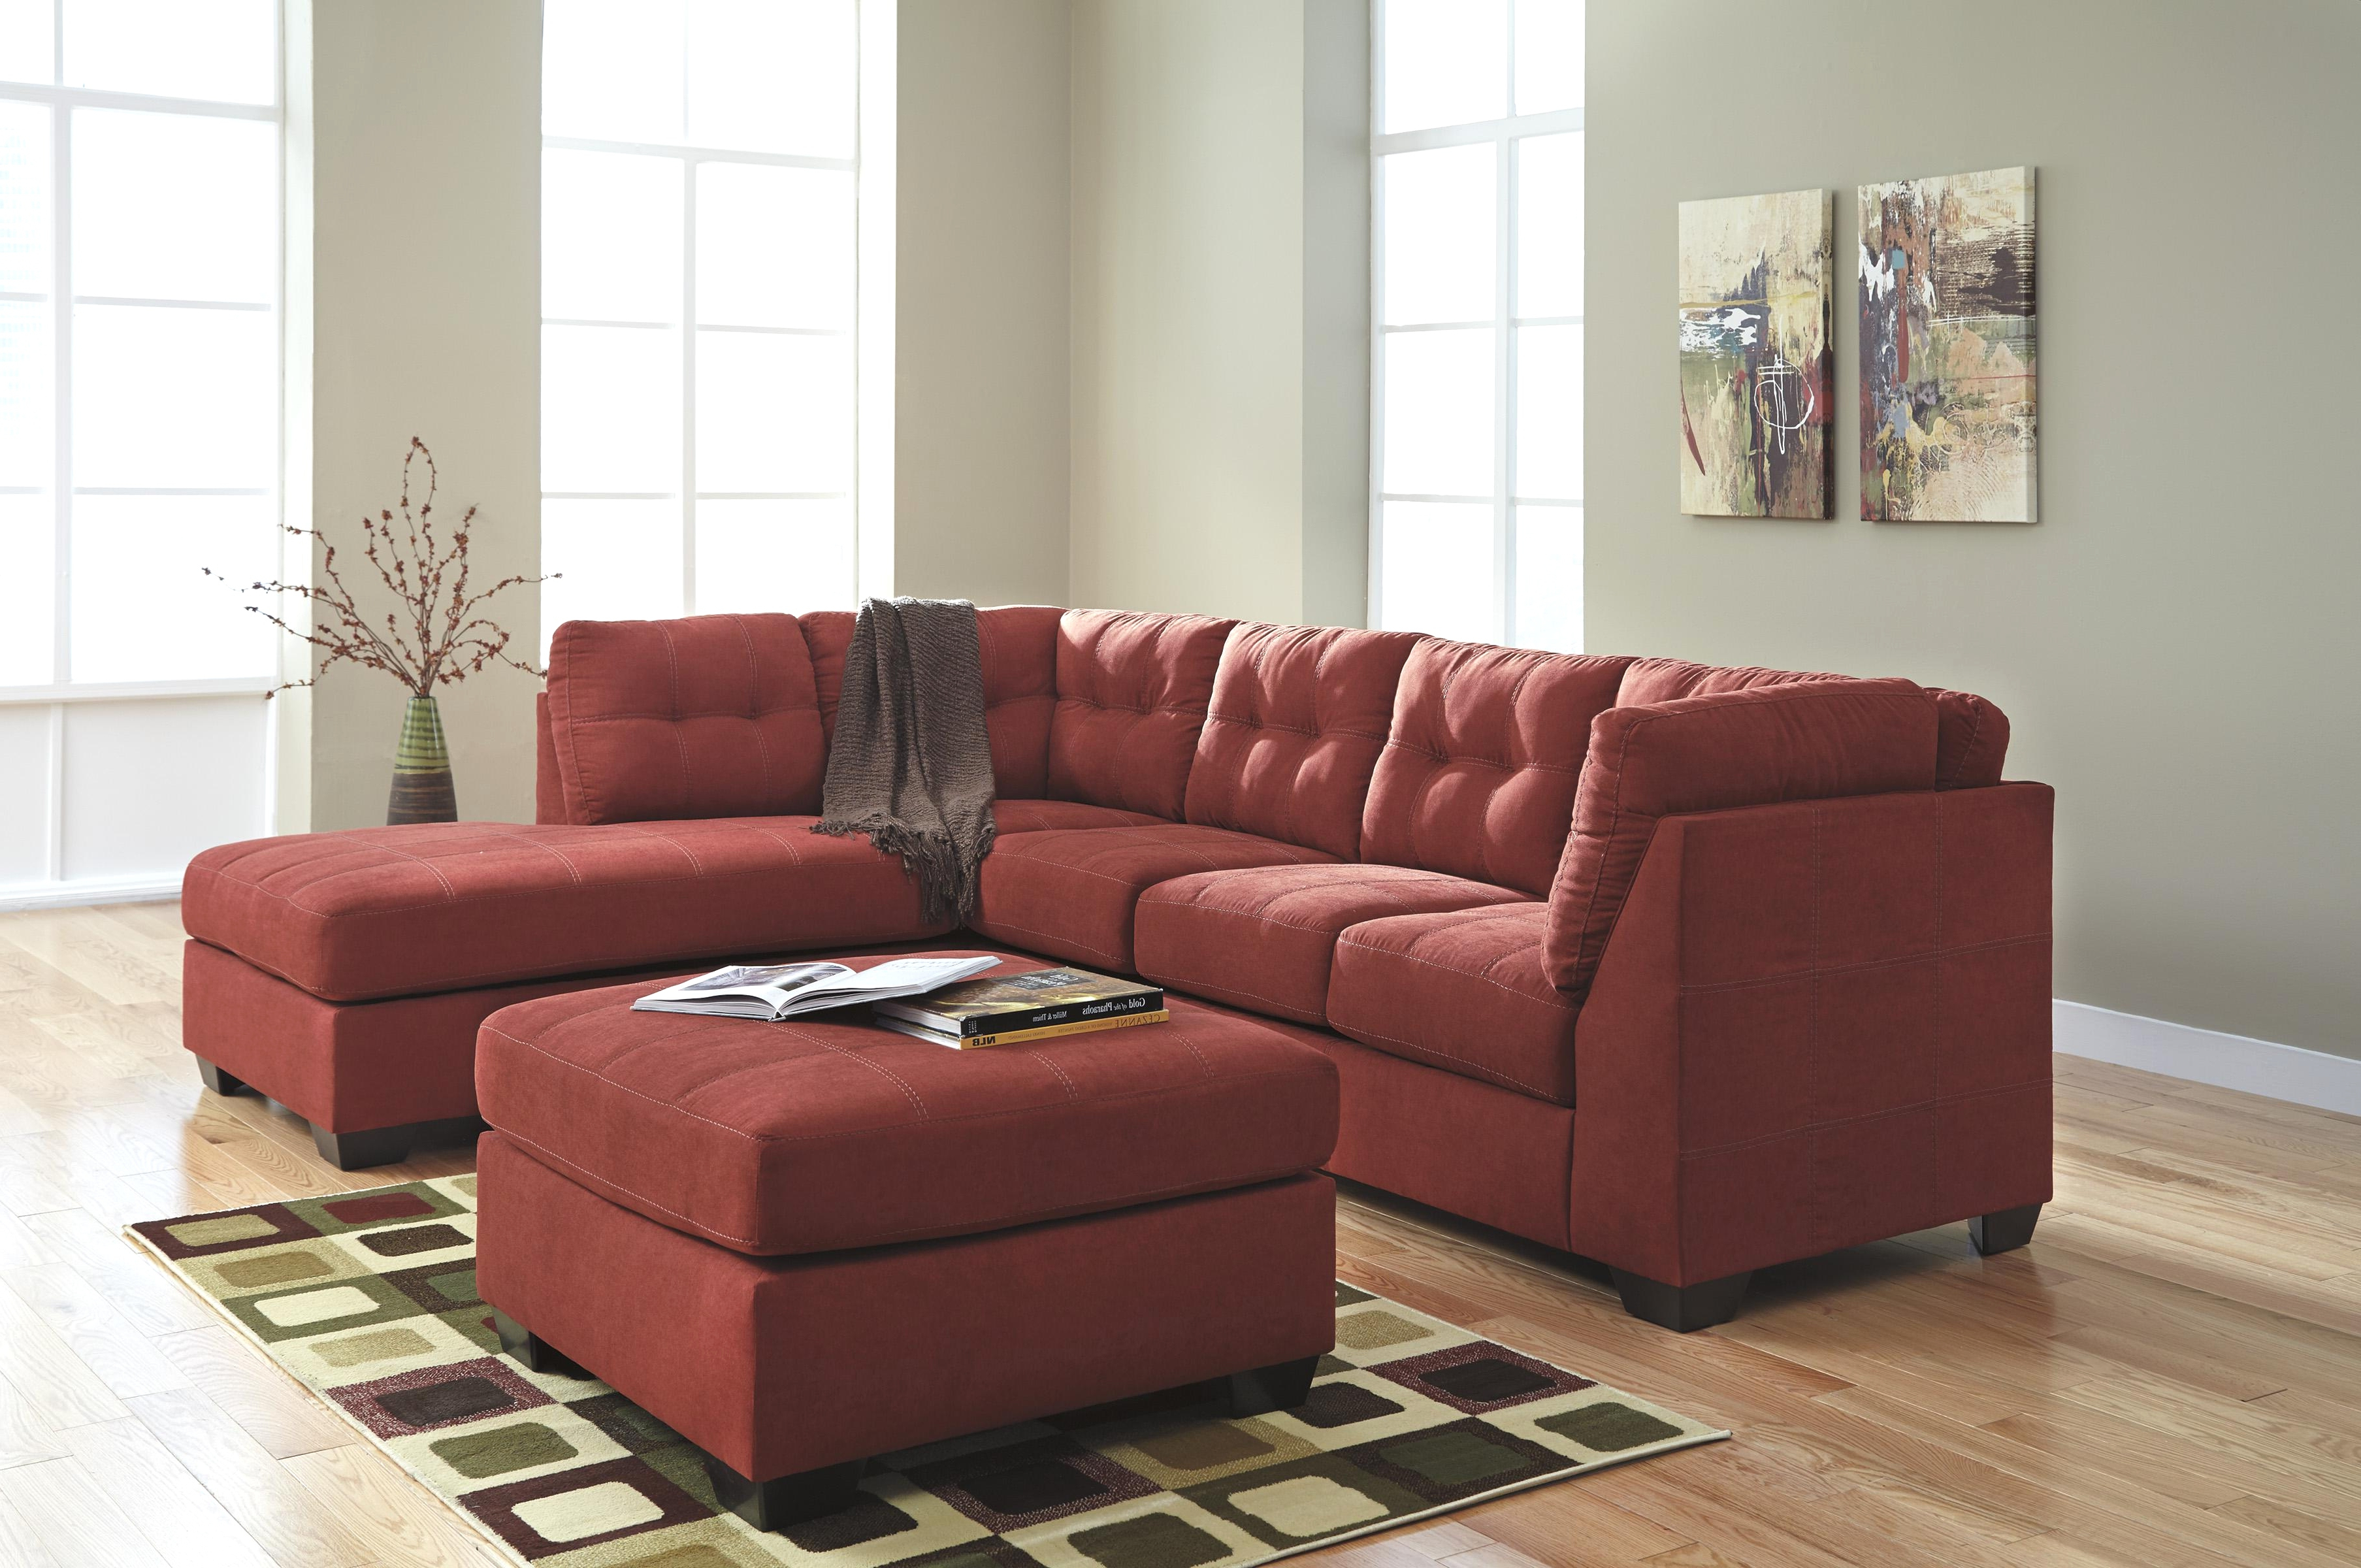 Baci Living Room With Regard To Arrowmask 2 Piece Sectionals With Sleeper & Right Facing Chaise (View 6 of 20)